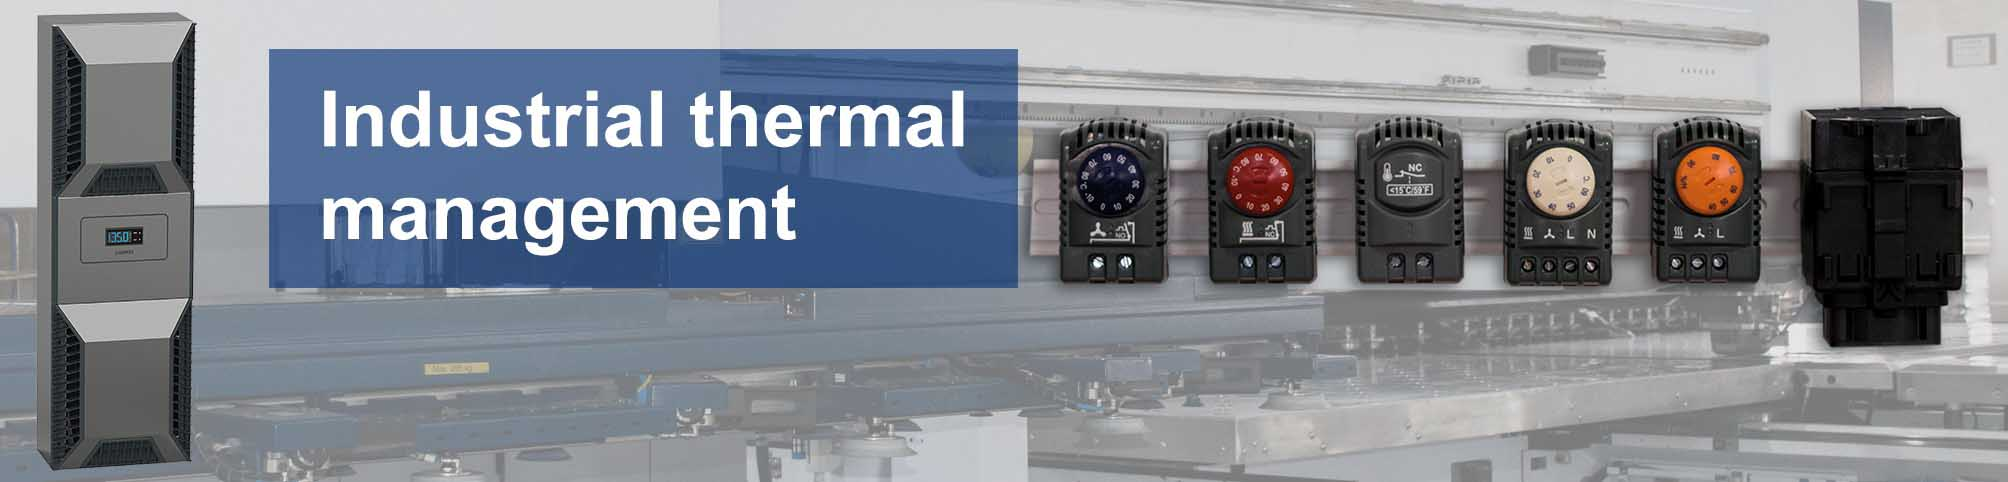 Industrial thermal management